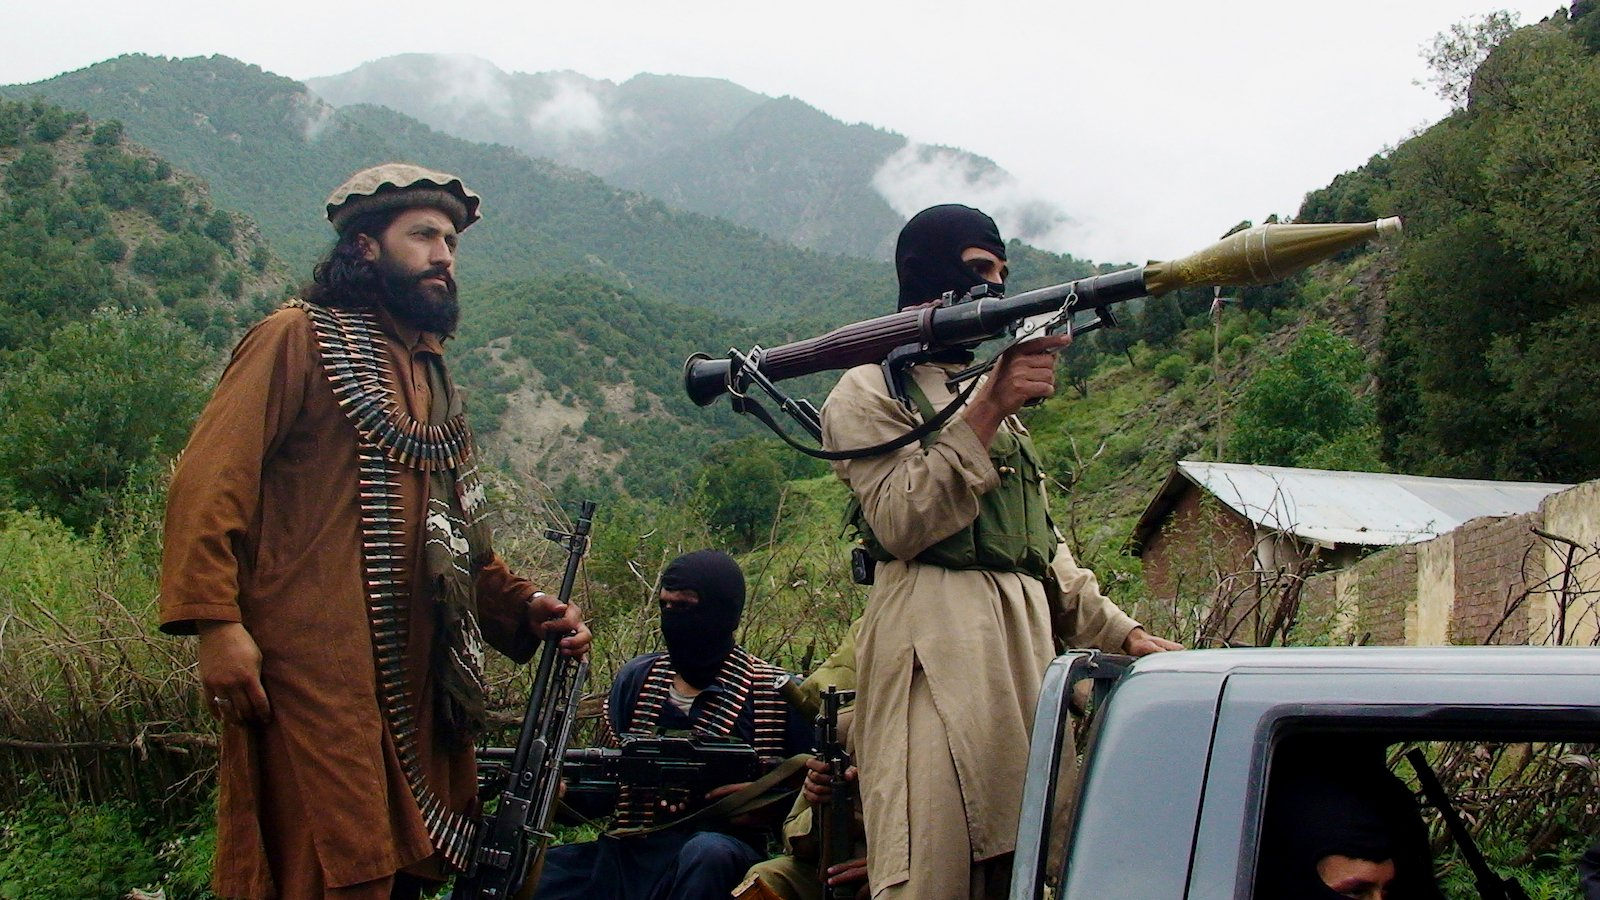 FILE - In this Aug. 5, 2012 file photo, Pakistani Taliban patrol in their stronghold of Shawal in Pakistani tribal region of South Waziristan. Militant attacks are on the rise in Pakistan amid a growing religiosity that has brought greater intolerance, prompting one expert to voice concern the country could be overwhelmed by religious extremism. (AP Photo/Ishtiaq Mahsud, File)